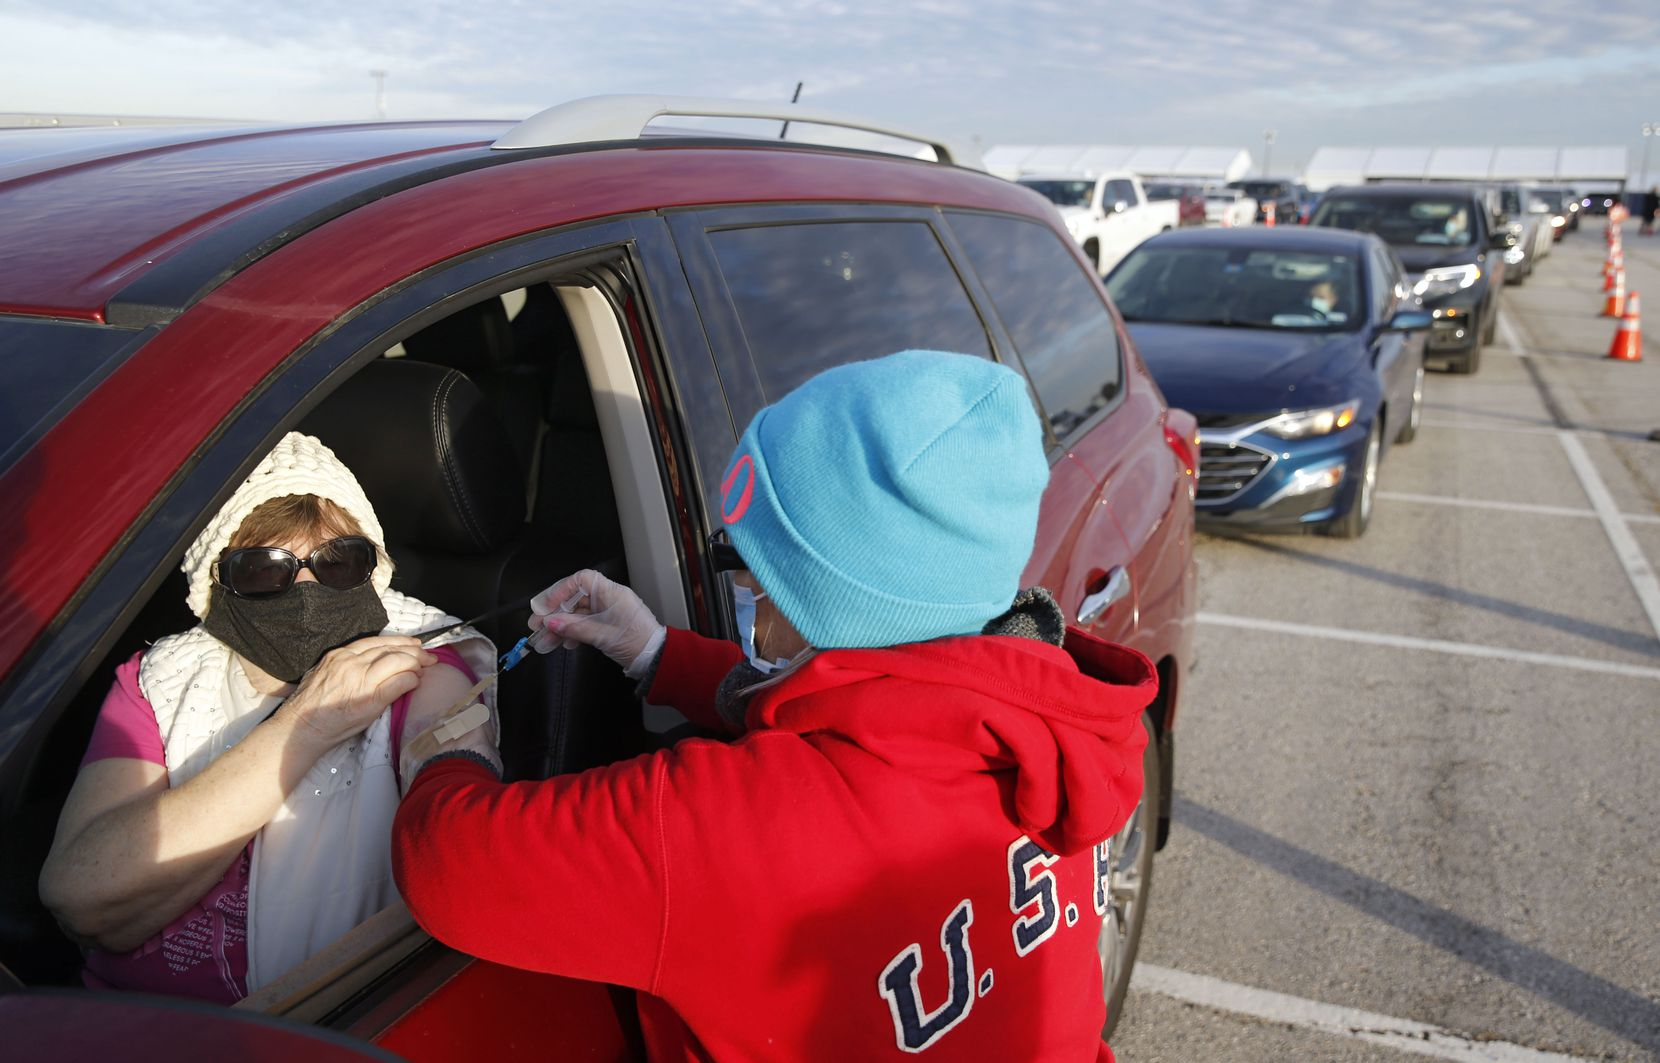 Donna Bergman of Flower Mound receives a COVID-19 vaccination from Penny Mayo at a drive-through vaccination clinic at Texas Motor Speedway in Fort Worth.